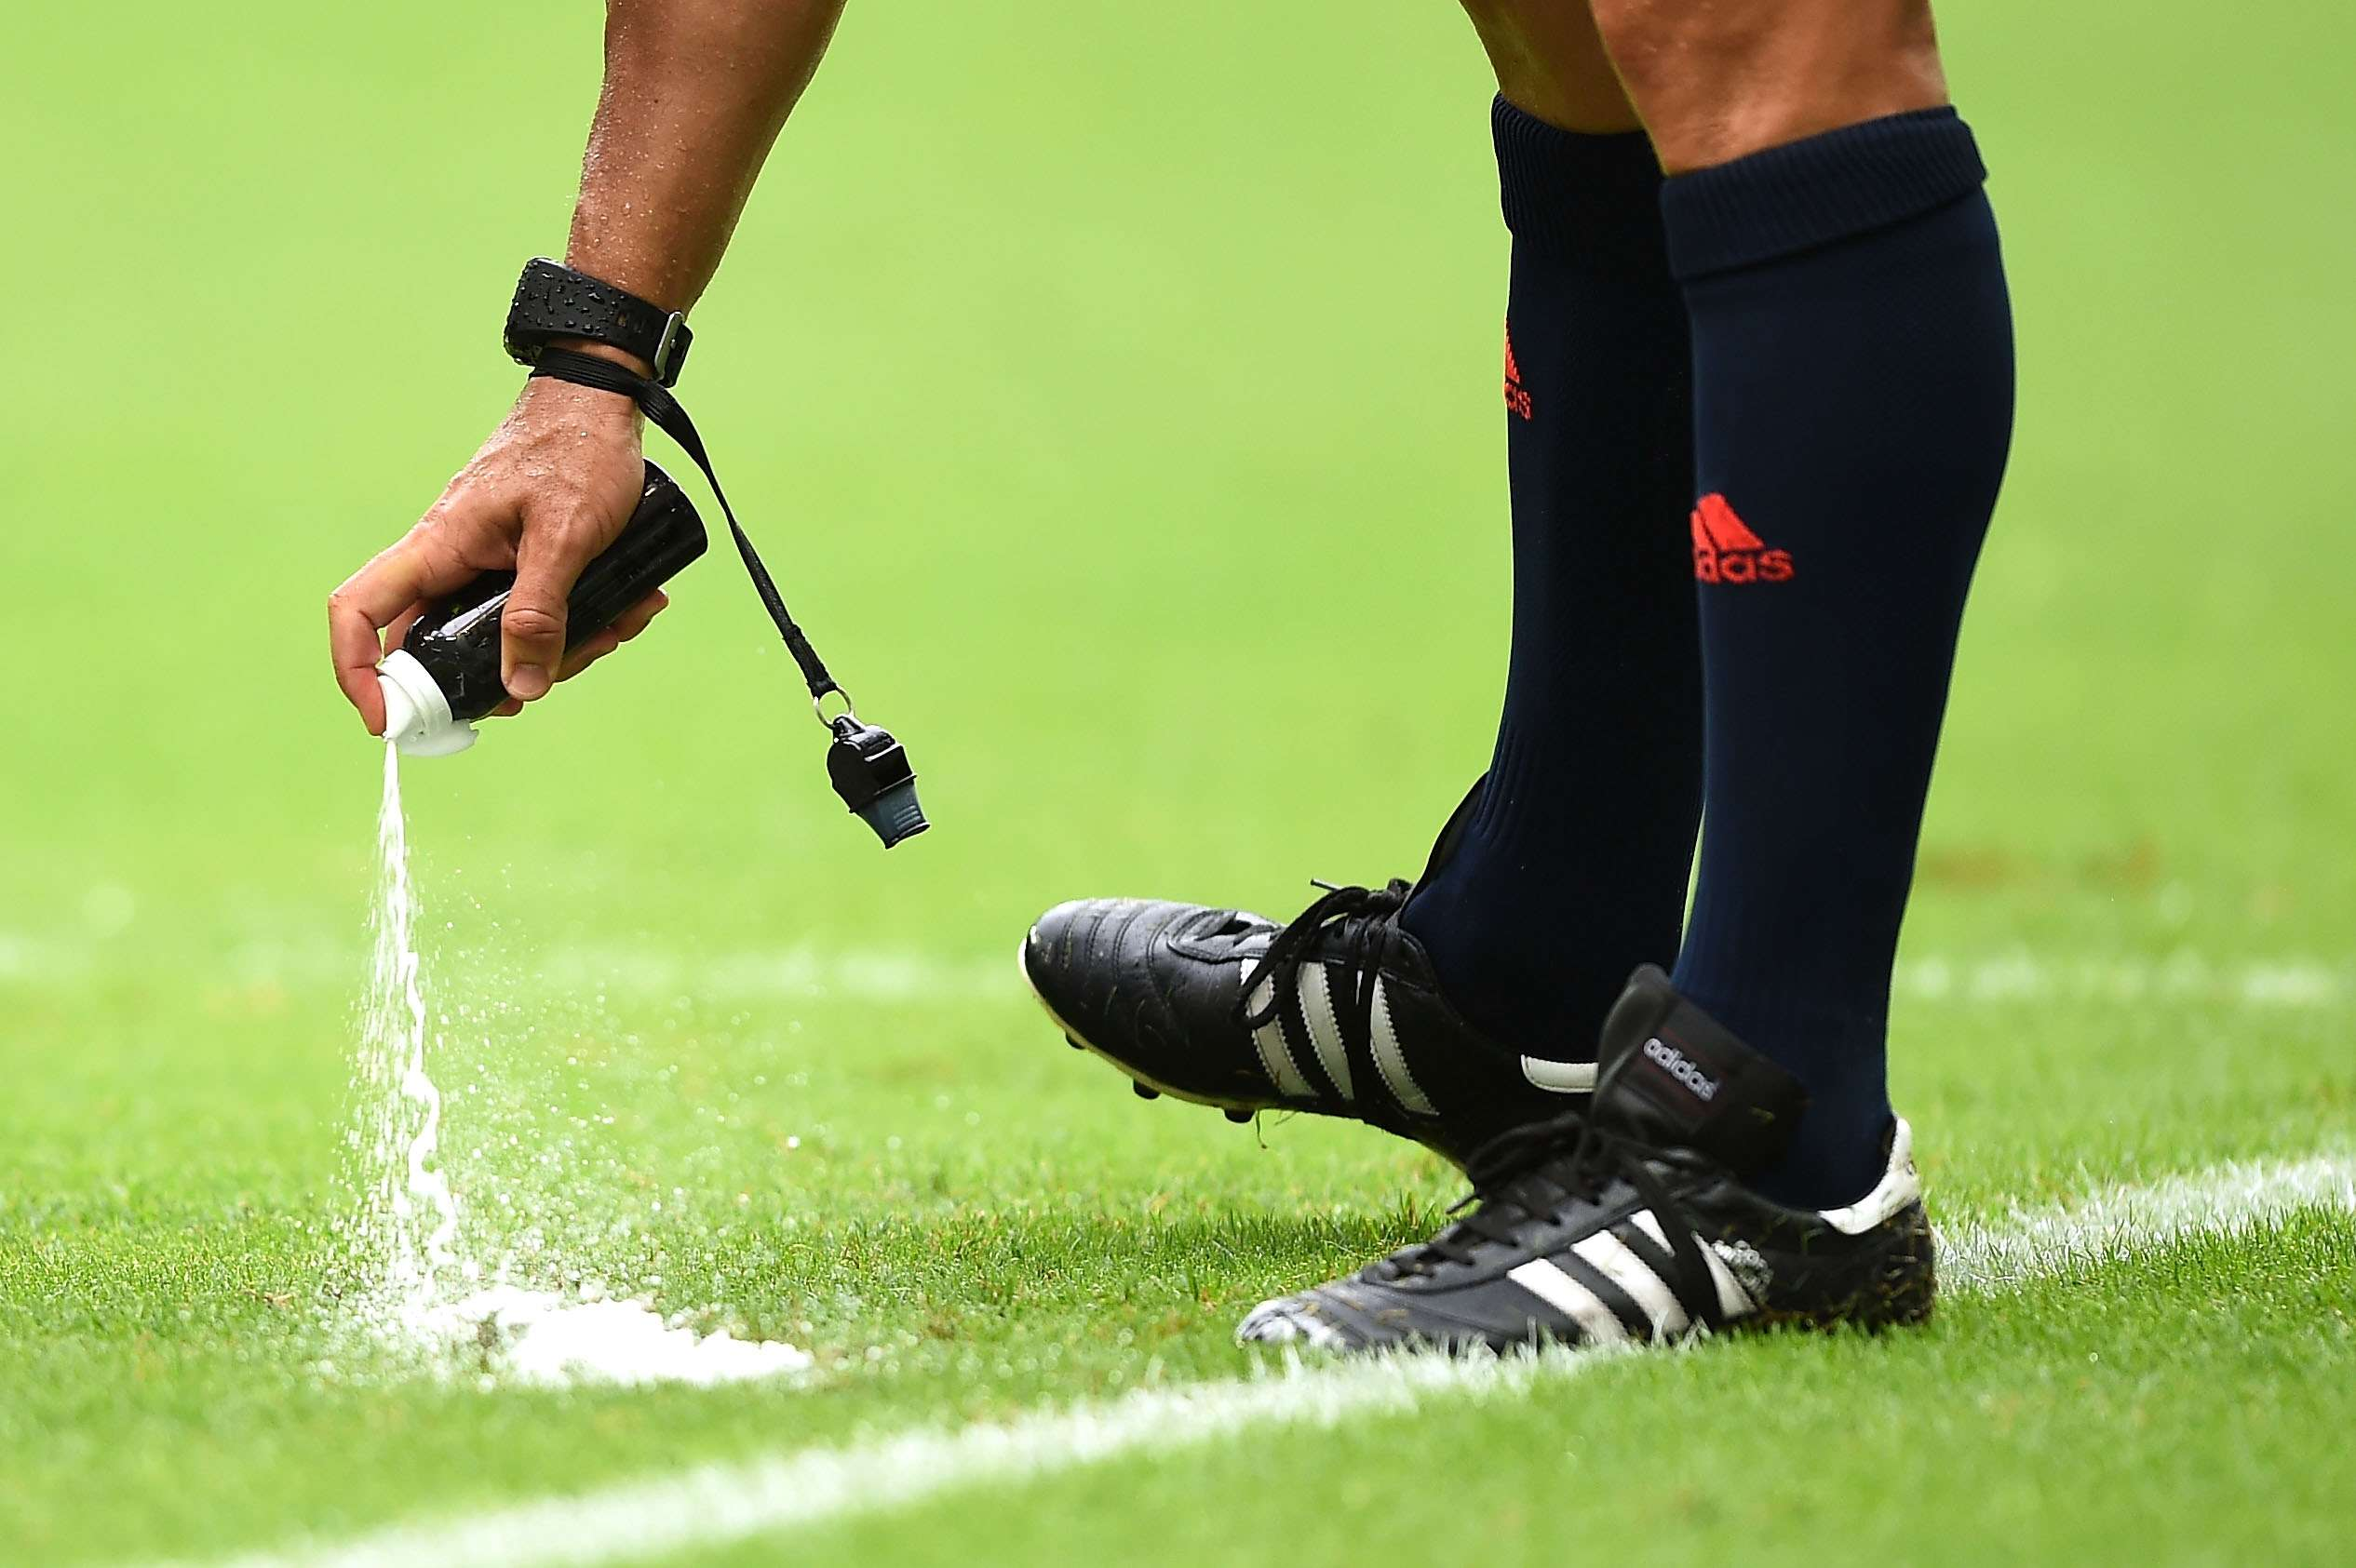 La Premier League adopta el spray del Mundial